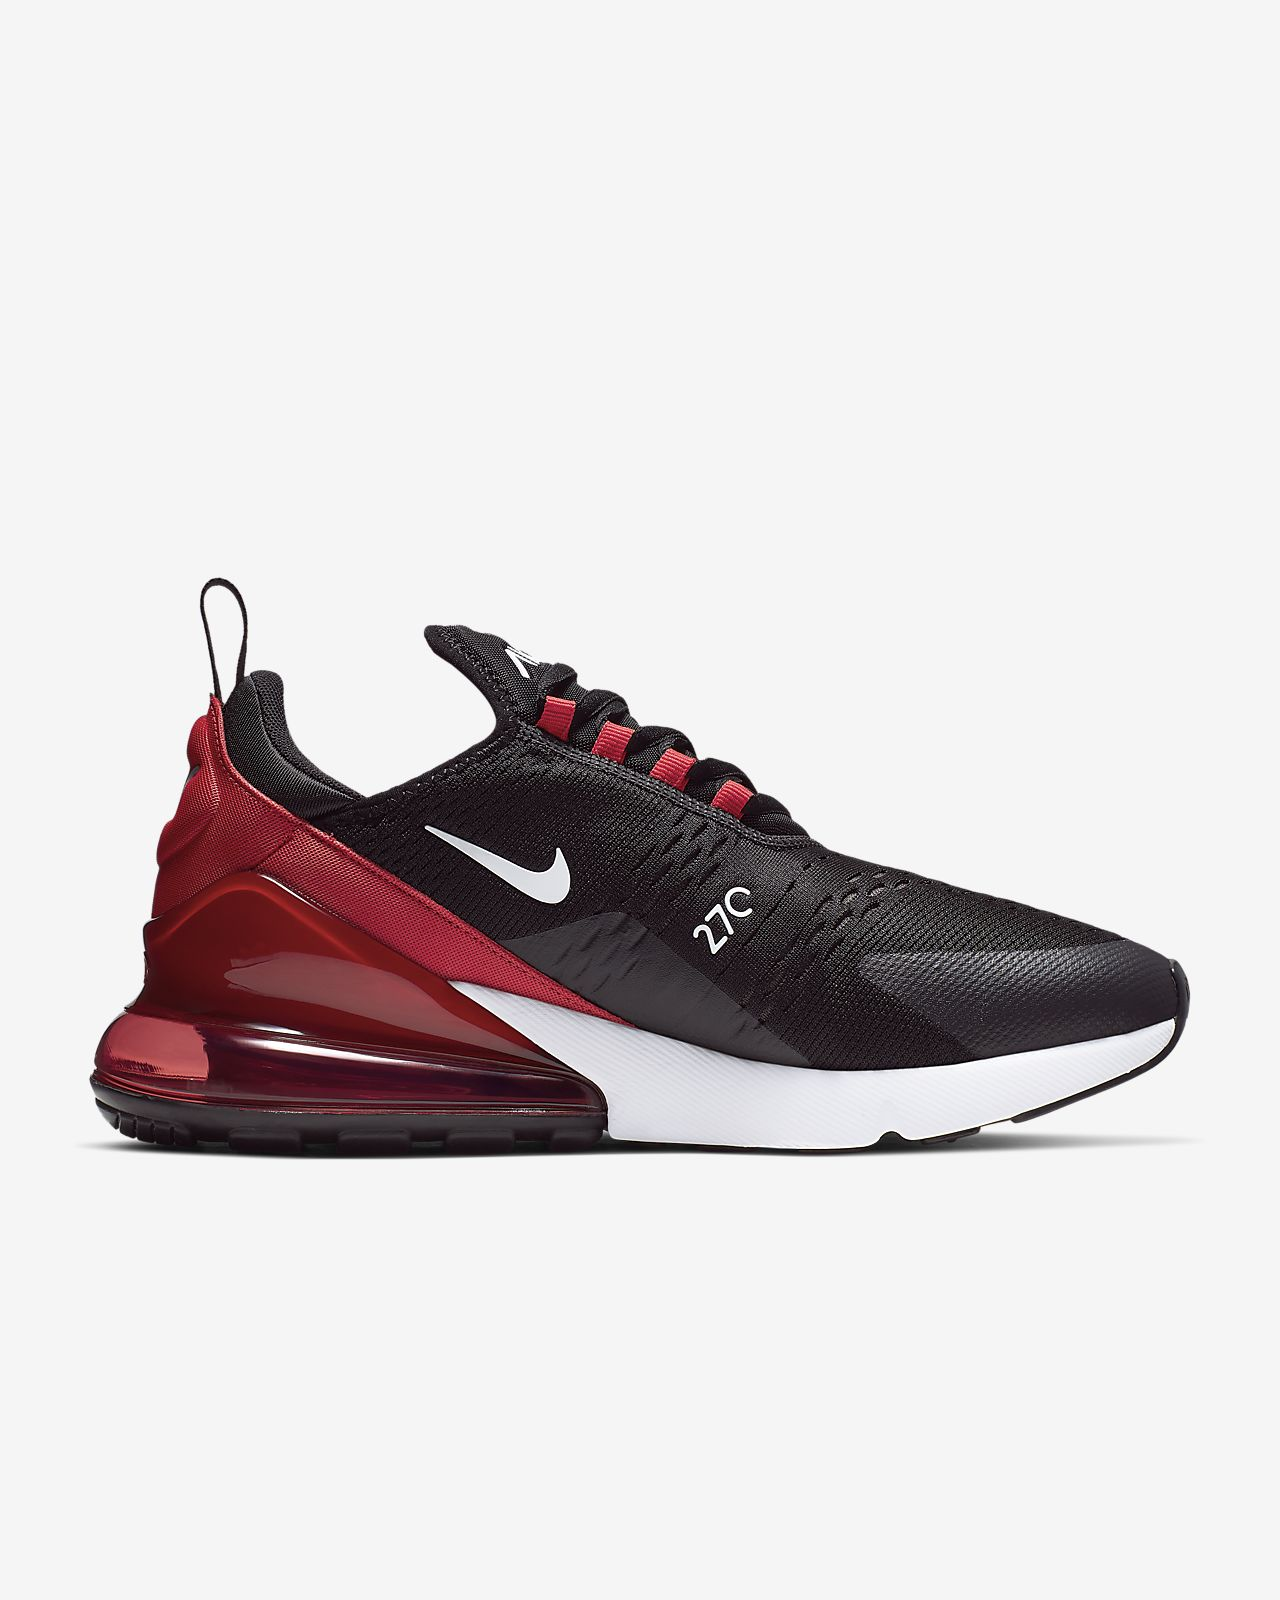 42ff244bce78 Nike Air Max 270 Men s Shoe. Nike.com GB